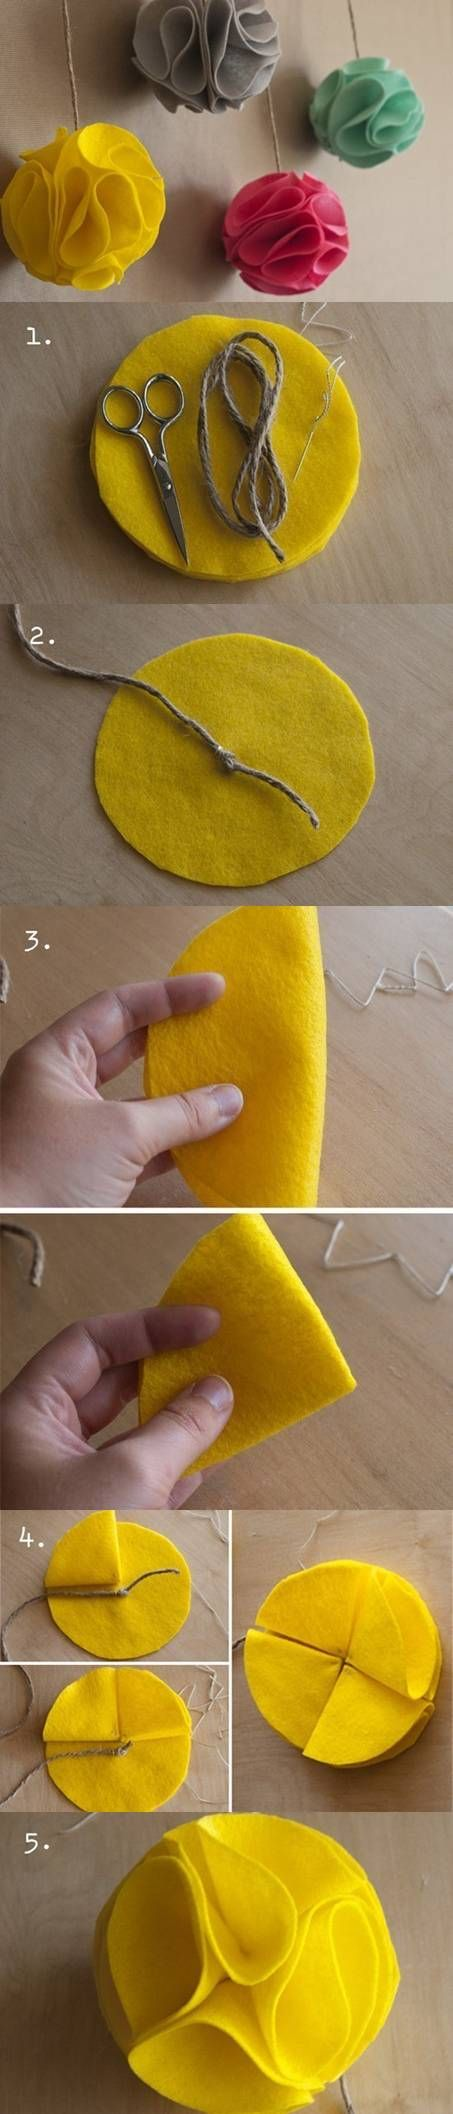 DIY: DIY Home and Crafts: DIY Felt Decorative Balls DIY Projects |... - Socialbliss | iemo[イエモ] | リフォーム&インテリアまとめ情報